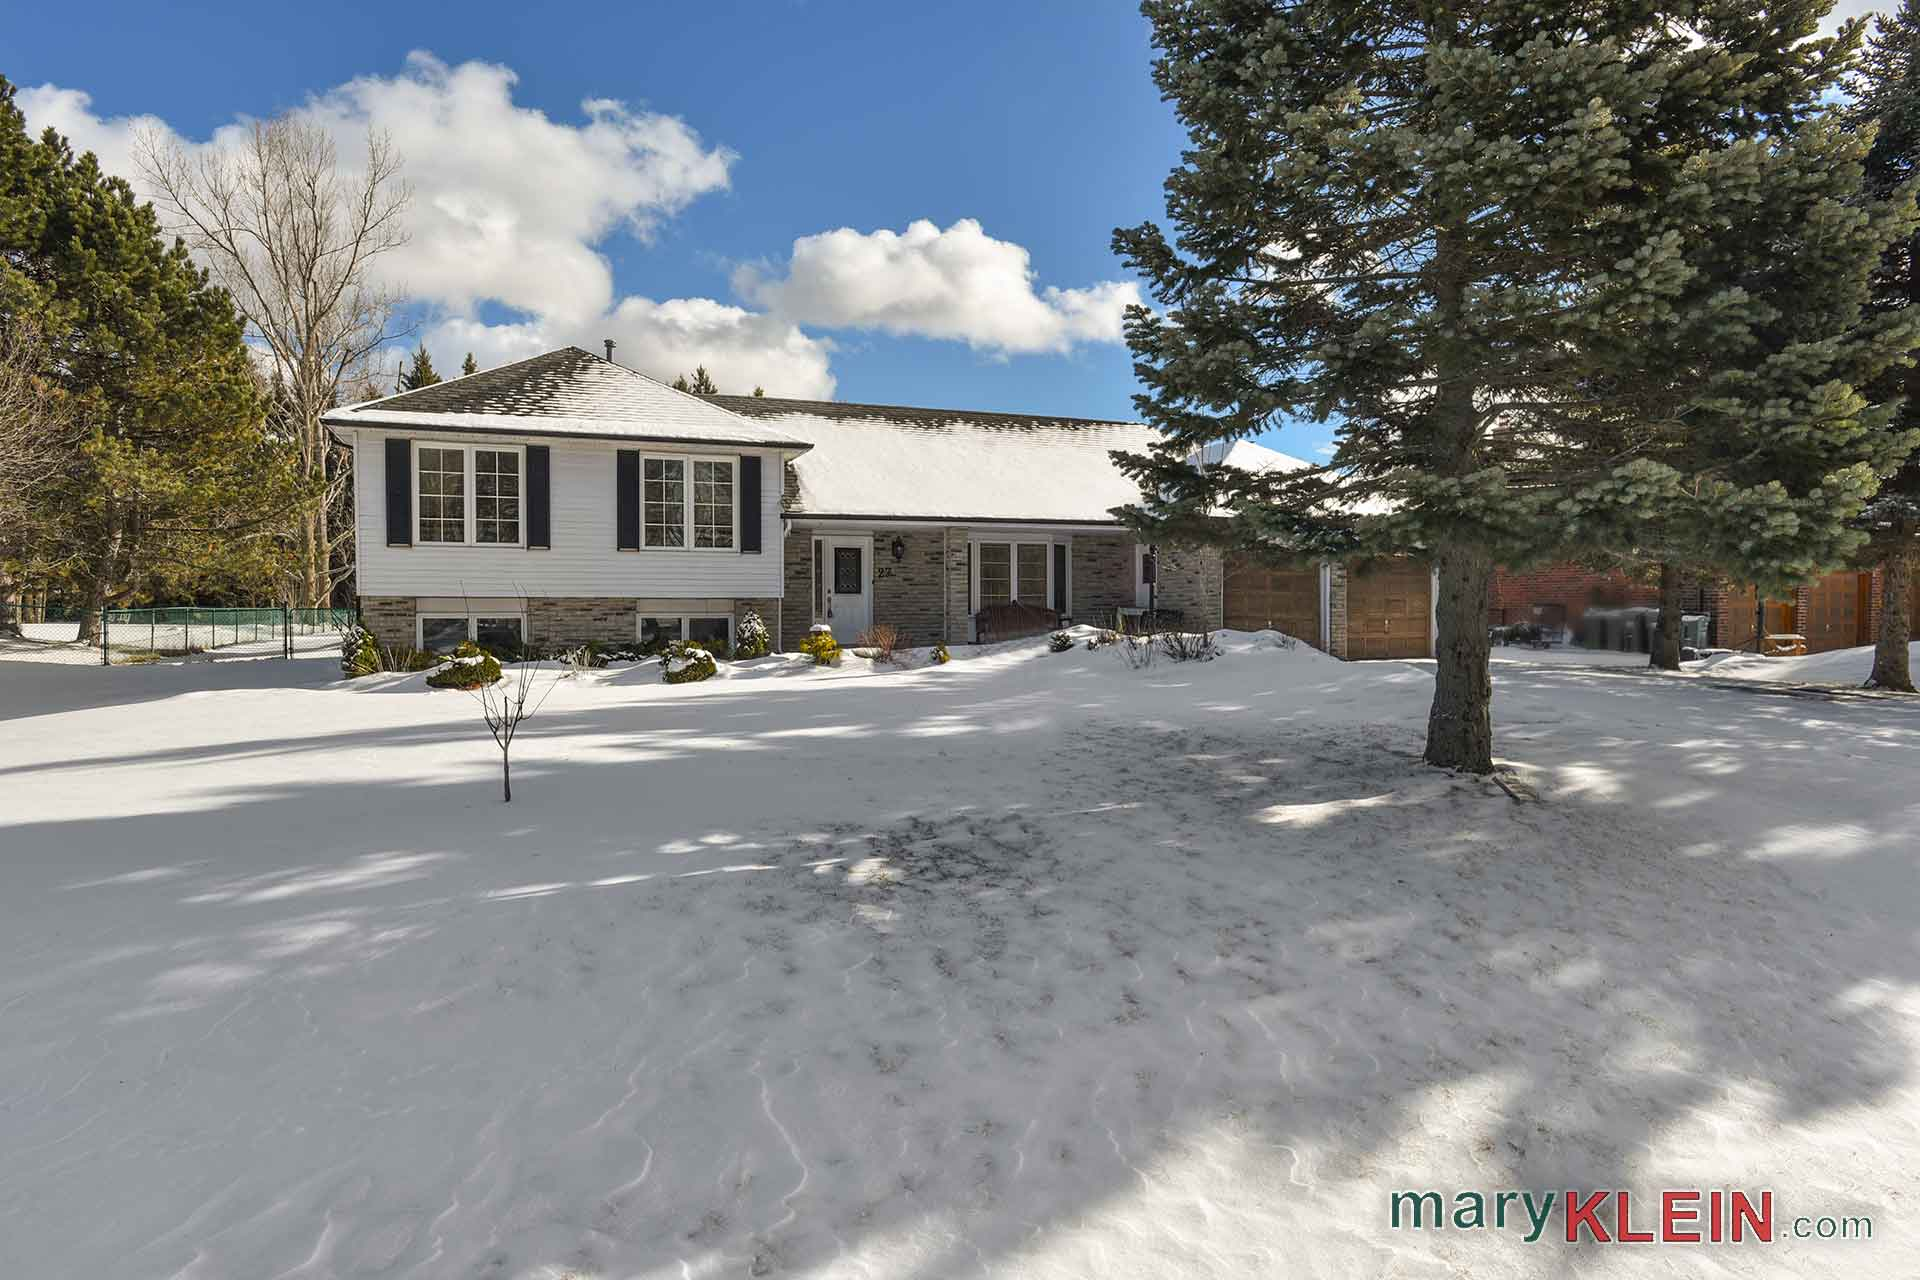 2 + 1 Bedroom Home For Sale, Caledon Village, Mary Klein